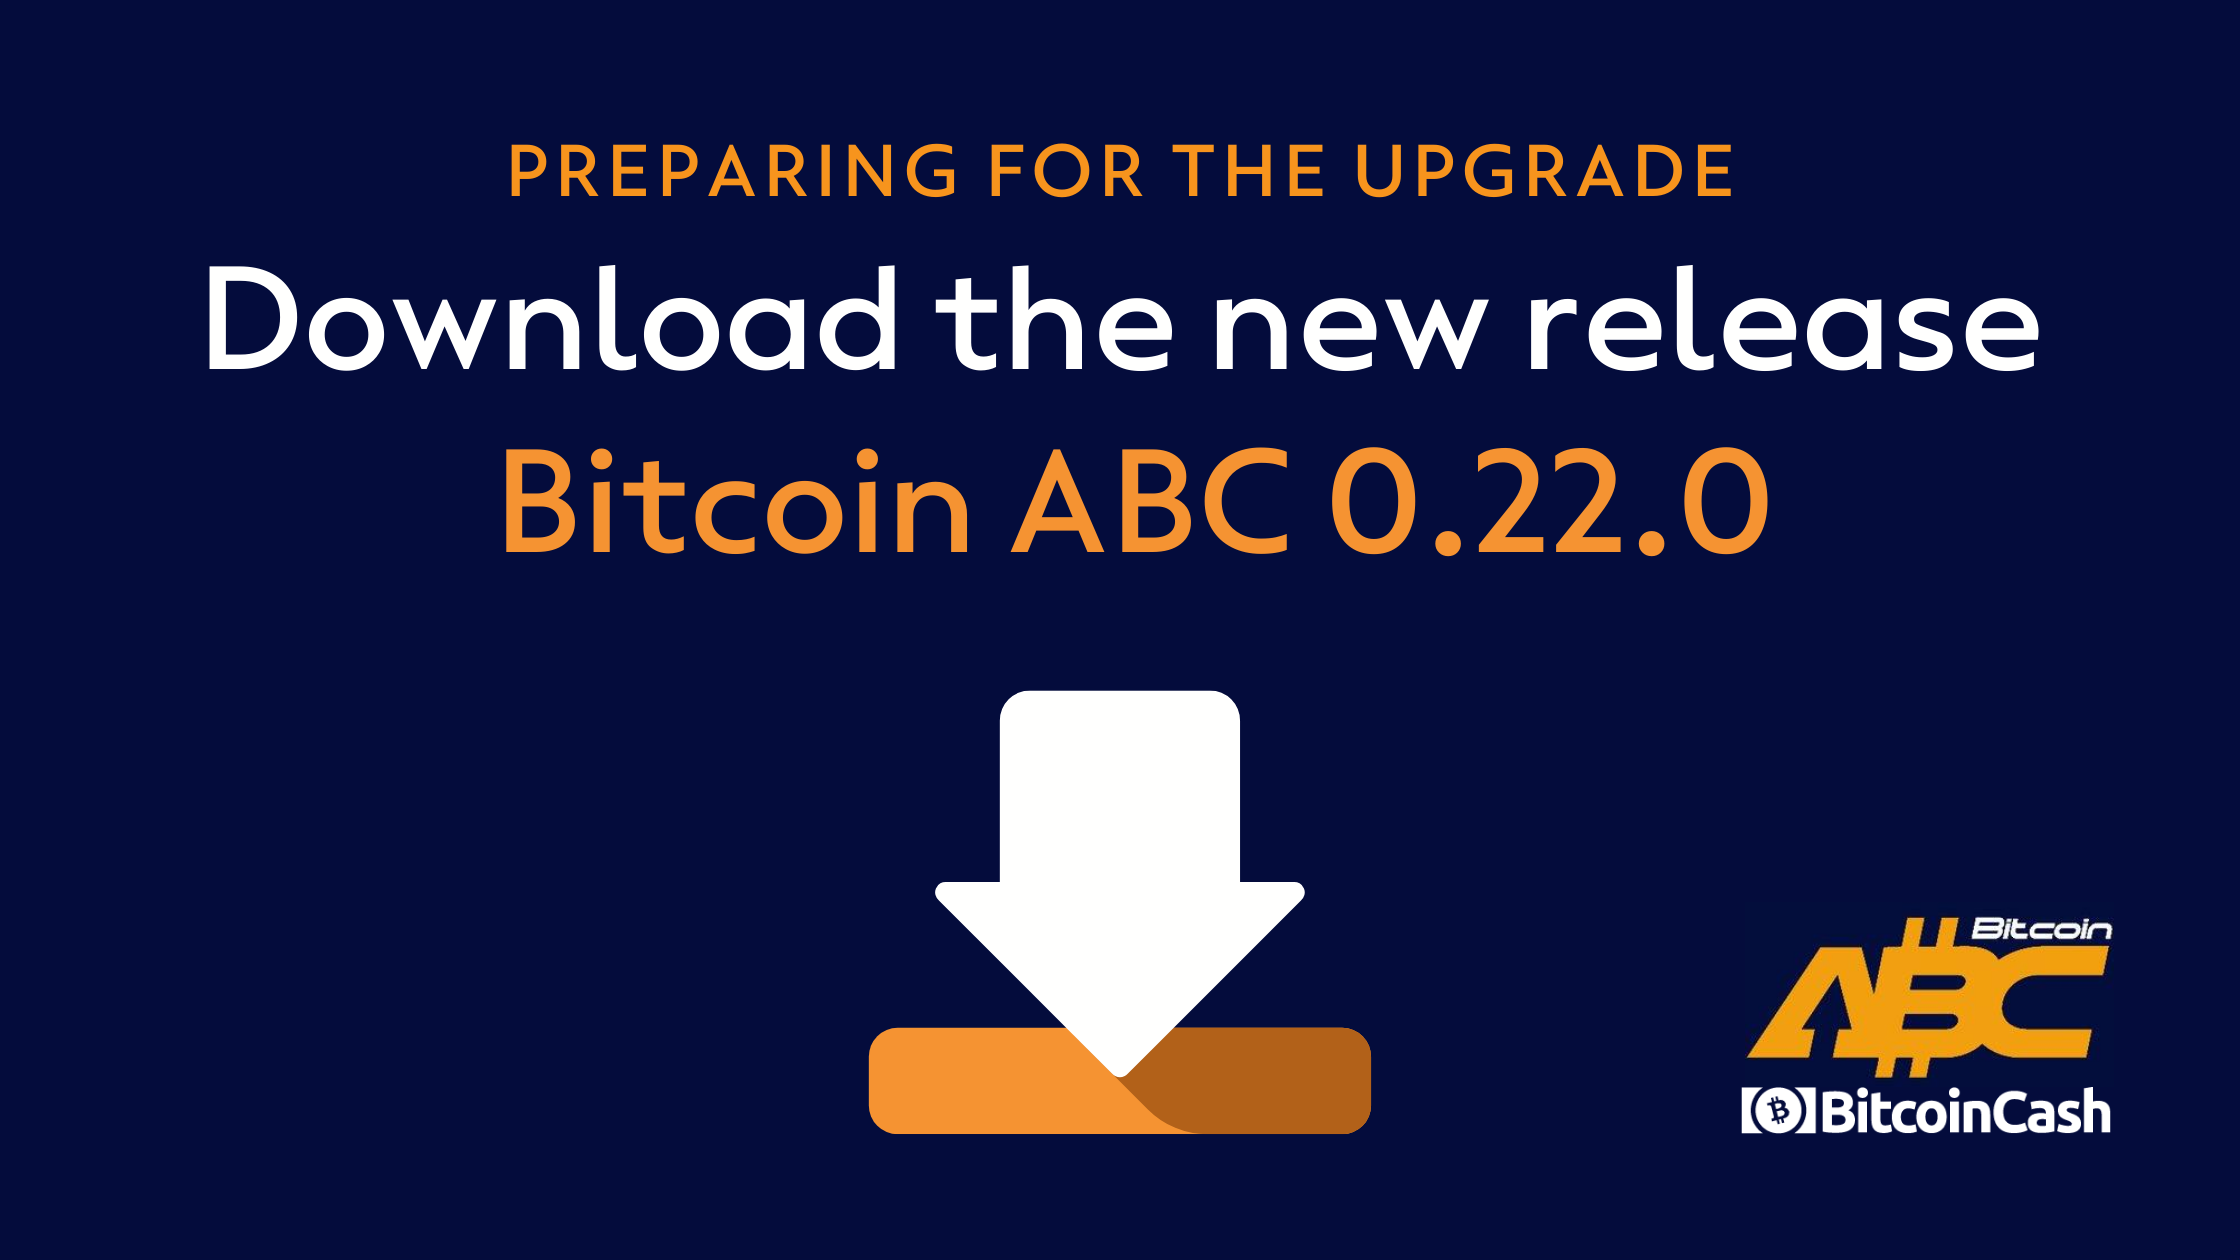 Preparing for the Upgrade: Download the new Bitcoin ABC 0.22.0